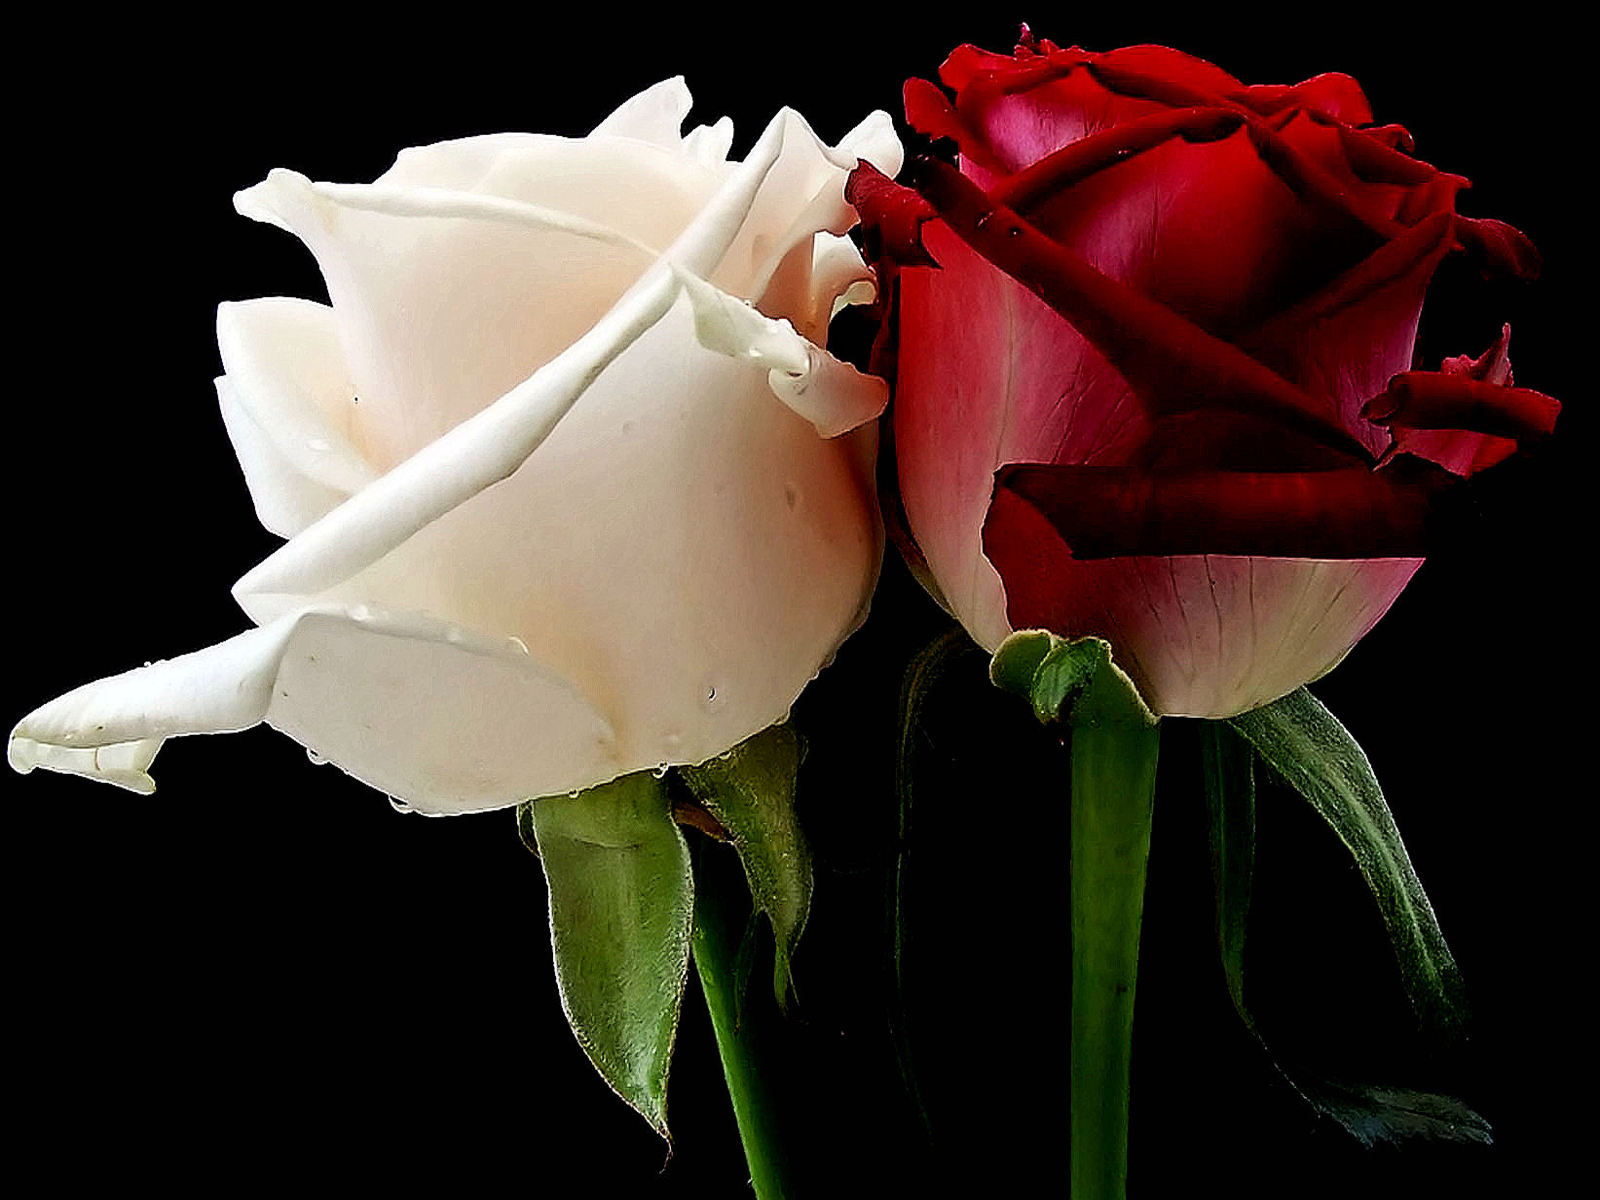 Images Of Red And White Roses Images & Pictures - Becuo